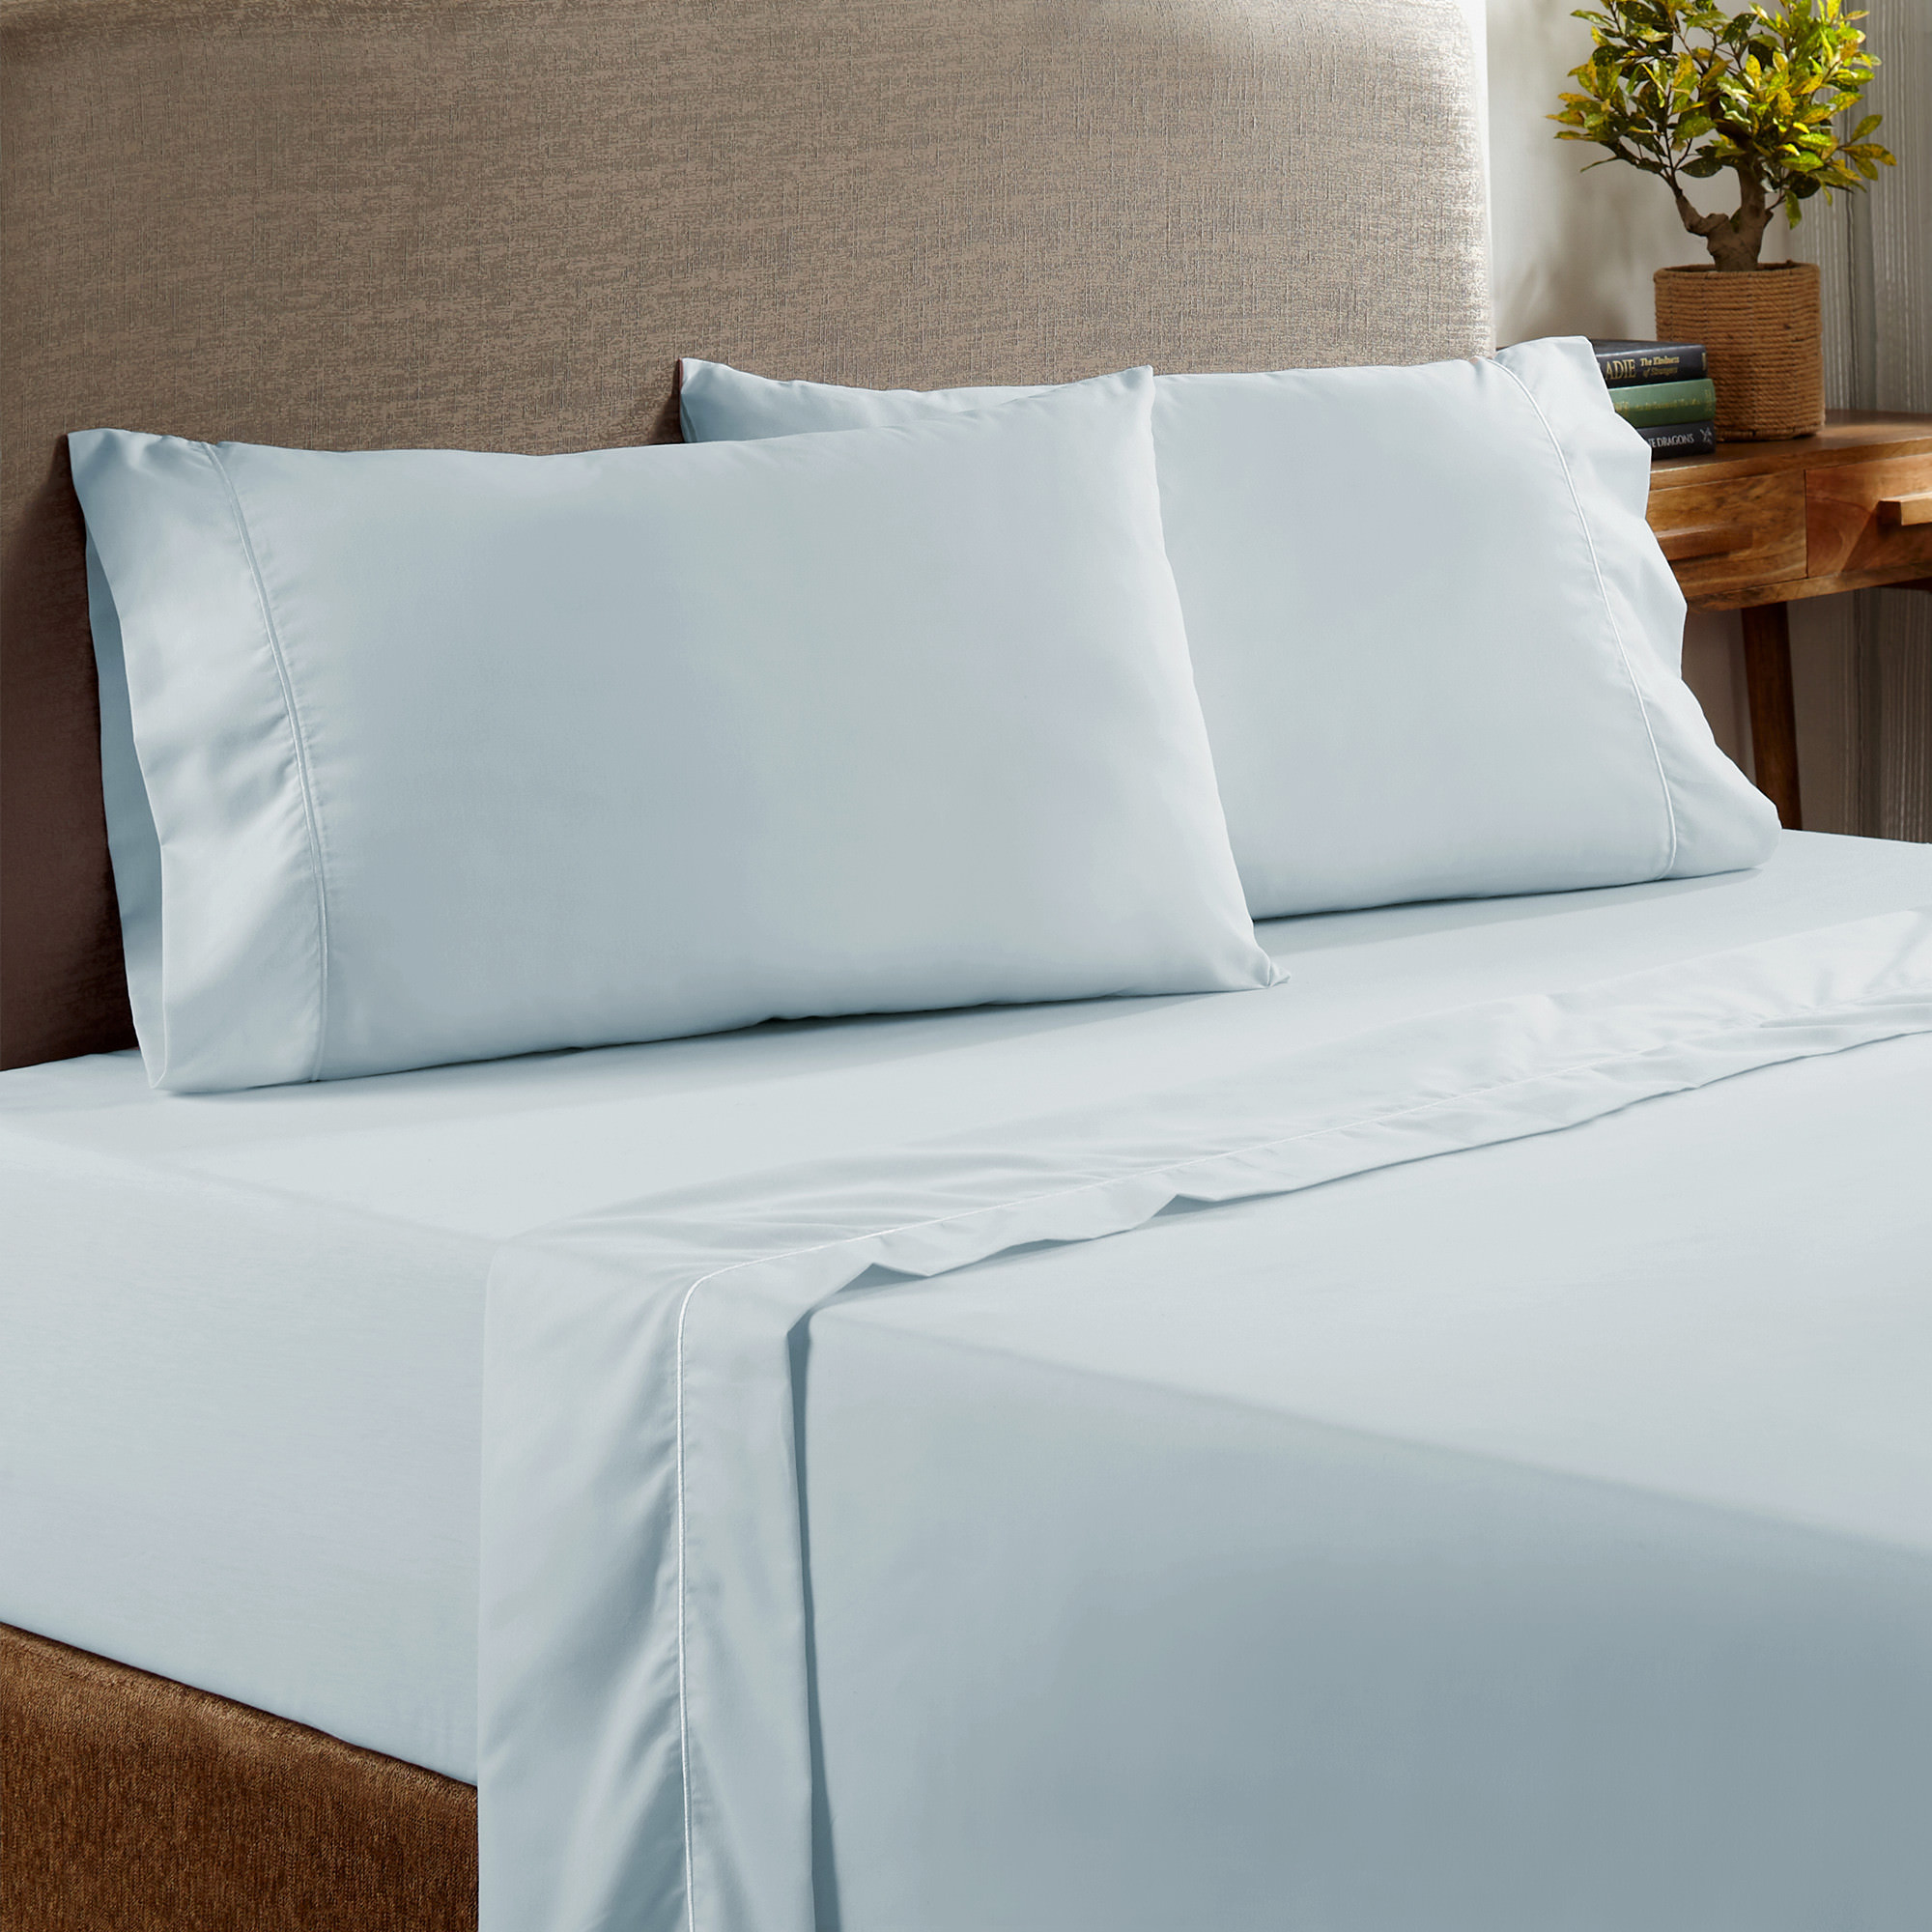 Pacific Coast Textiles Deep Pocket 400 Thread Count Brushed Finished Cotton Rich Sheet Set